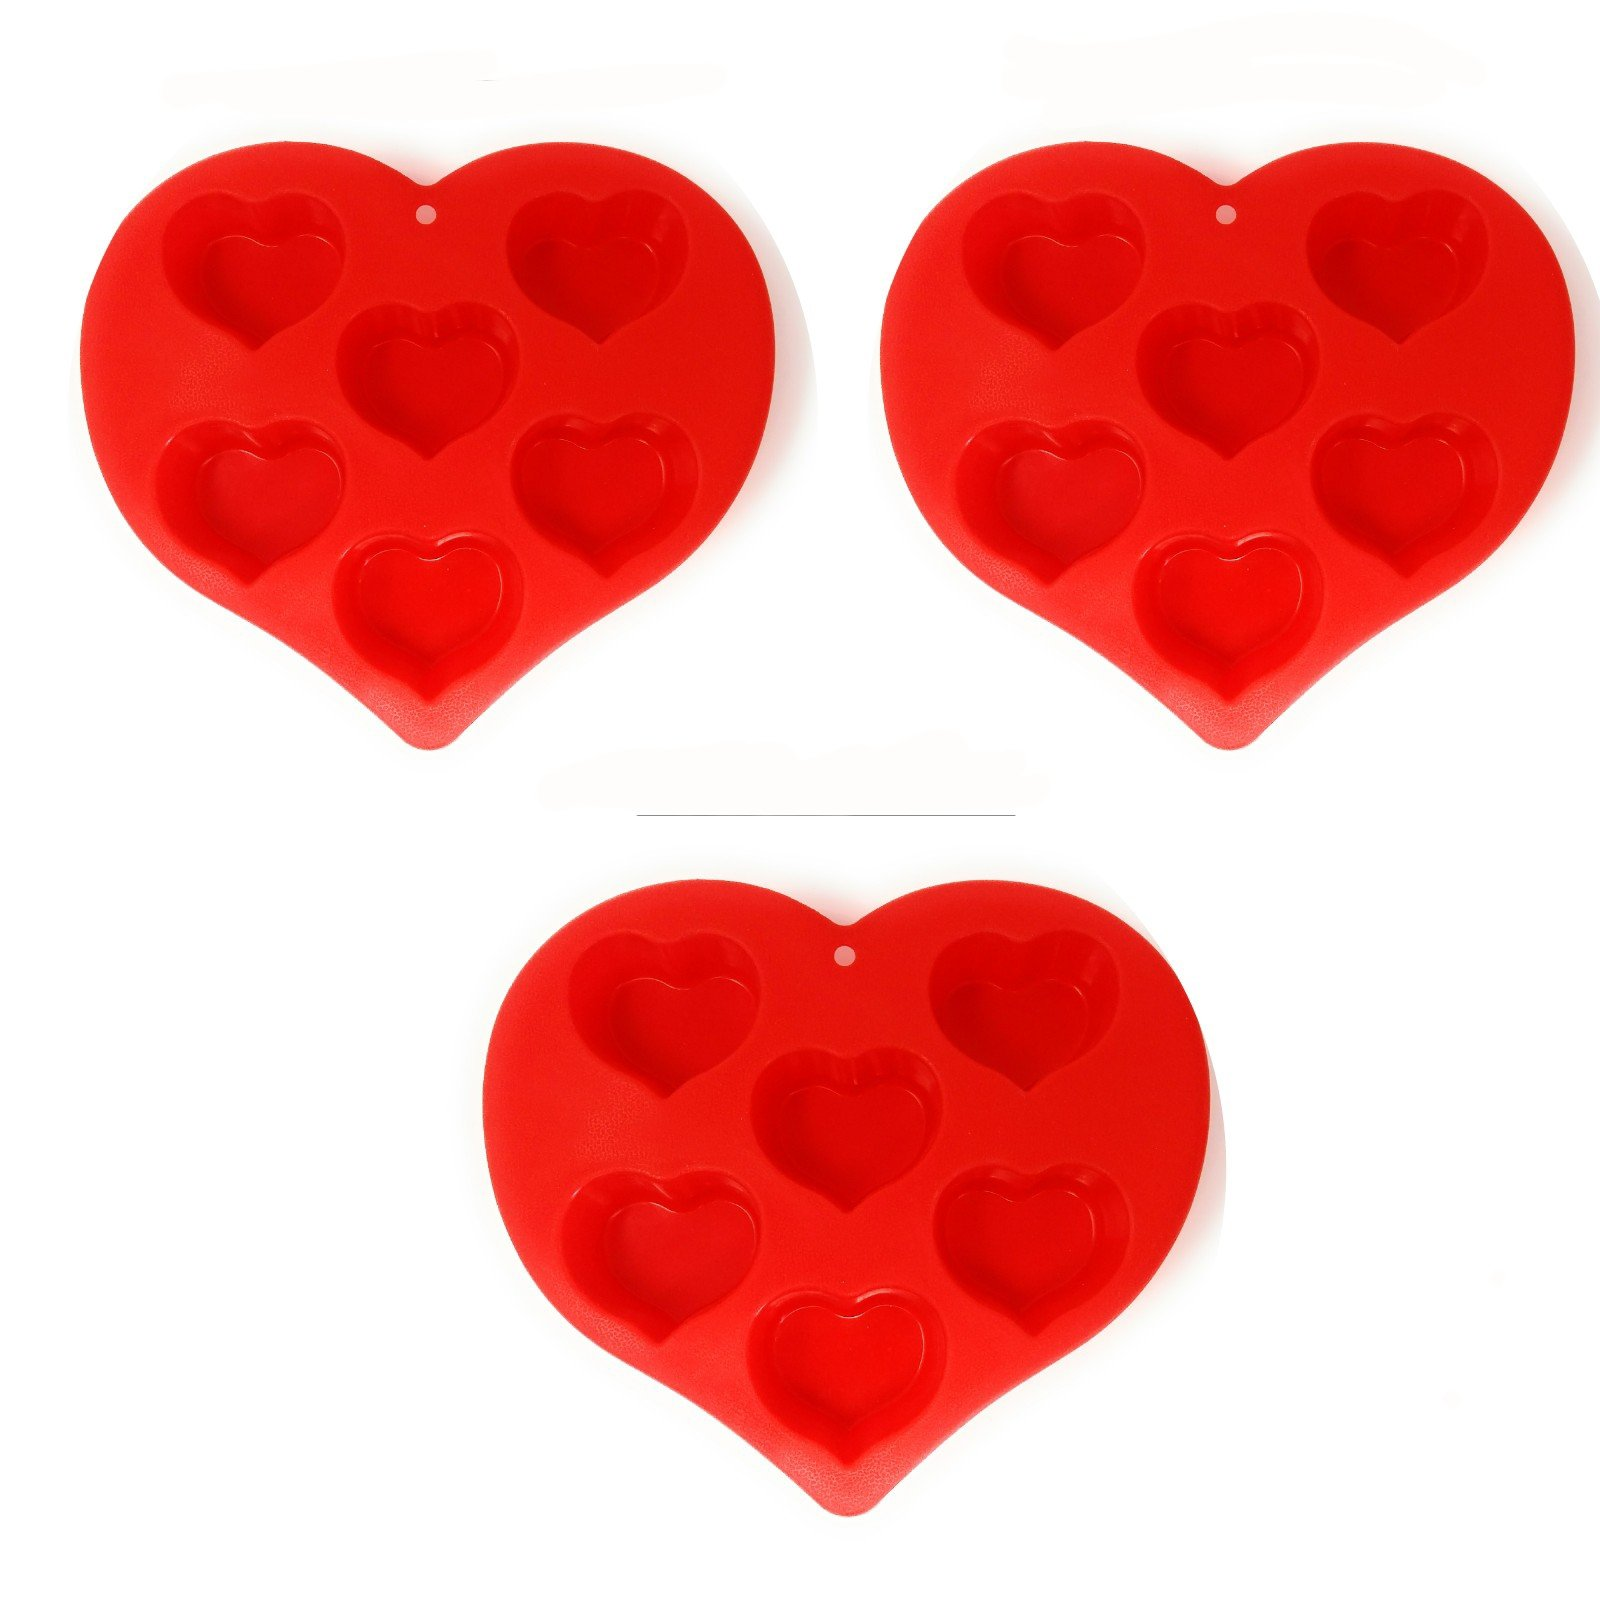 (Pack of 3) Silicone Heart Reusable Cookies and Muffin Mold, 6-Cavity for Heart Shaped Chocolate, Cakes, Candy and More! Non Stick BPA Flexible Hearts.Baking Wax Molds Silicone Ice. Bake 18 at a time.